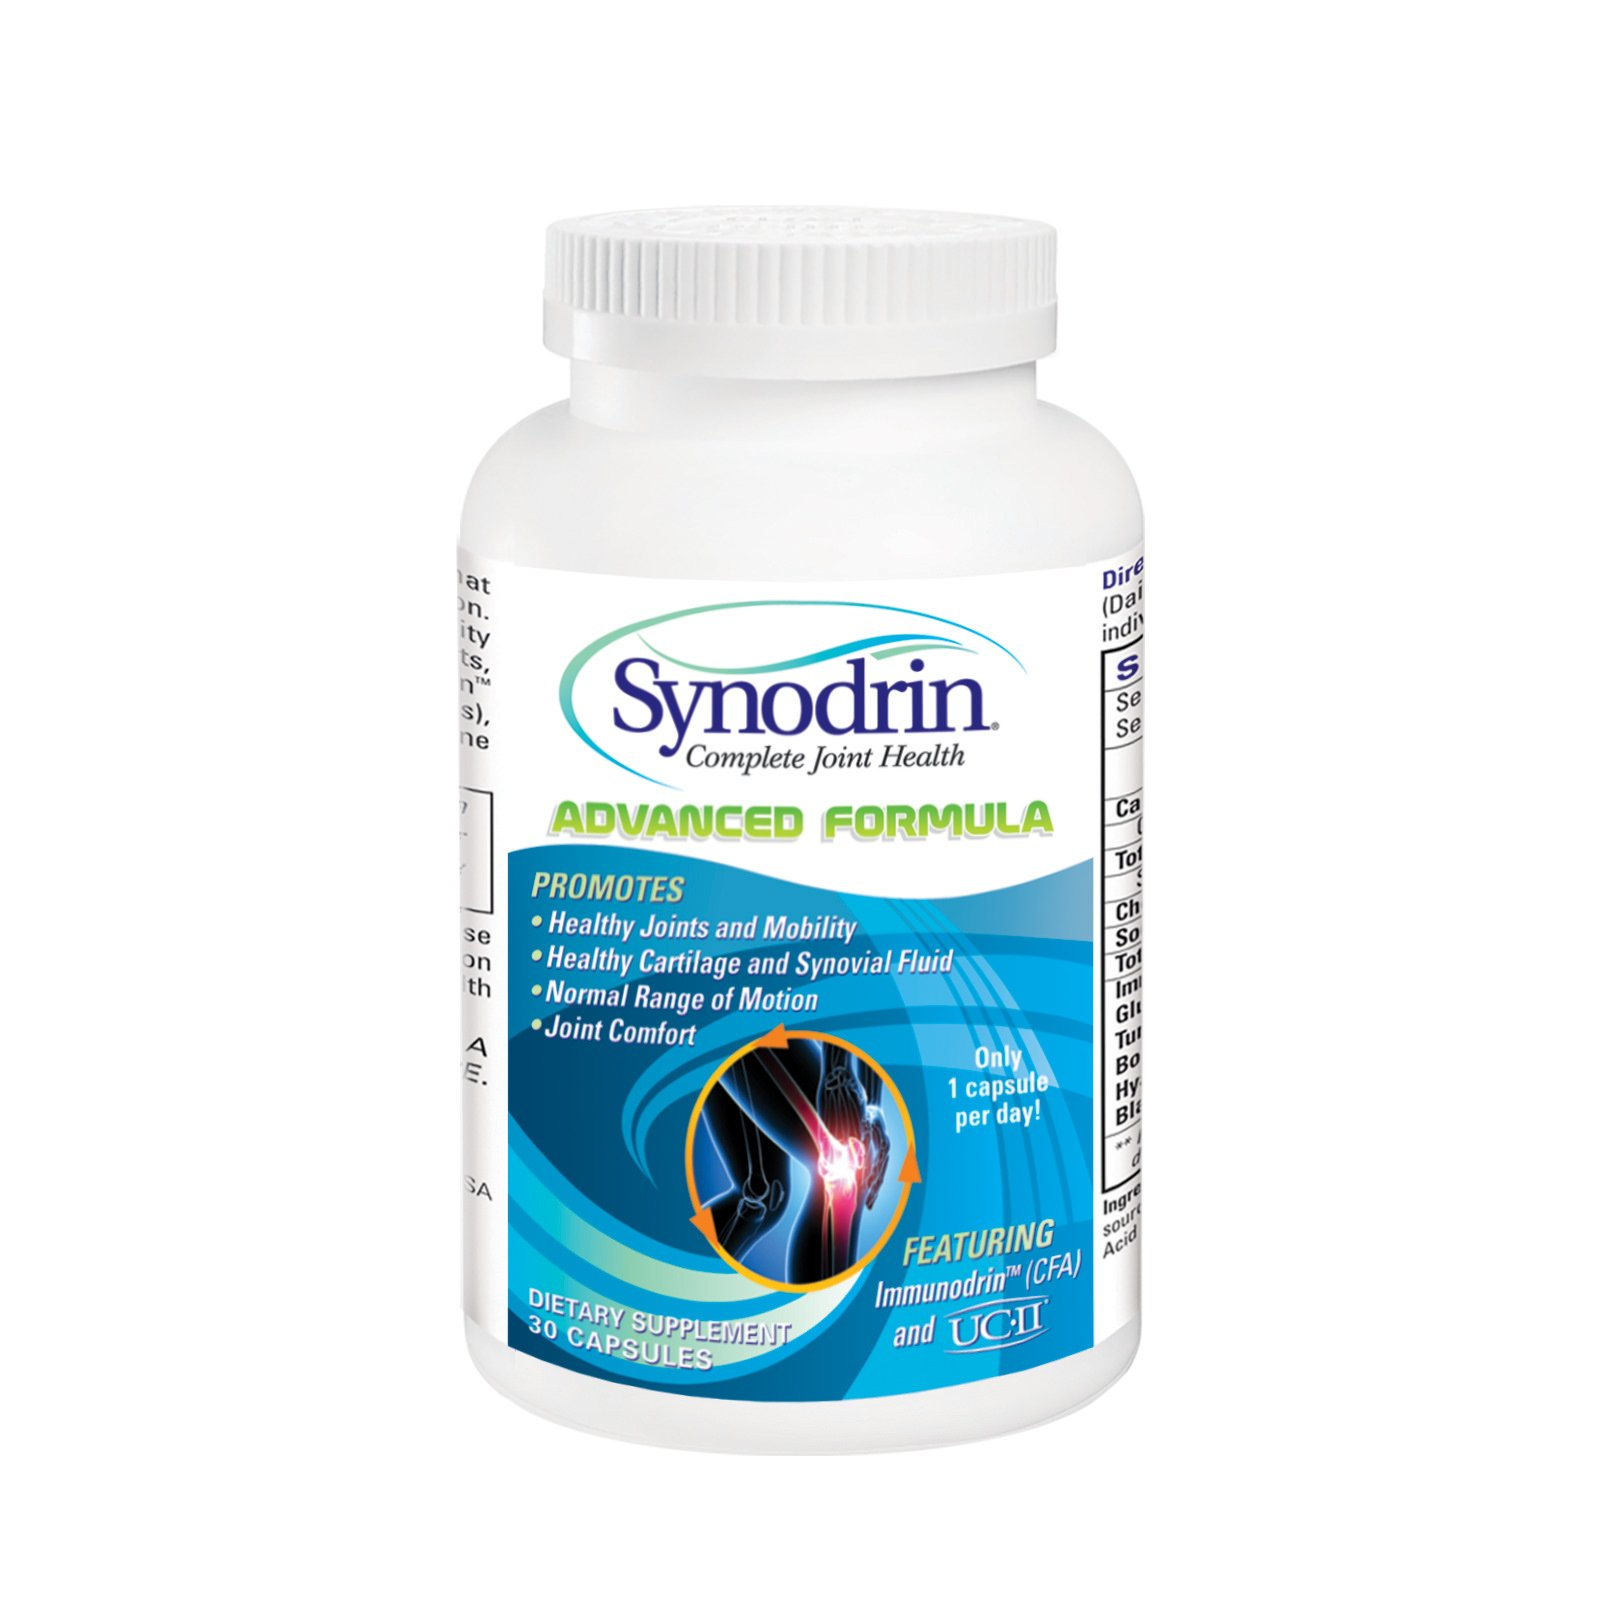 Synodrin Advanced Complete Joint and Arthritis Pain Relief Supplement (30 Count) with UC-II Collagen, Immunodrin, Turmeric, Boswellia, Hyaluronic Acid and Black Pepper Extract for Maximum Pain Relief